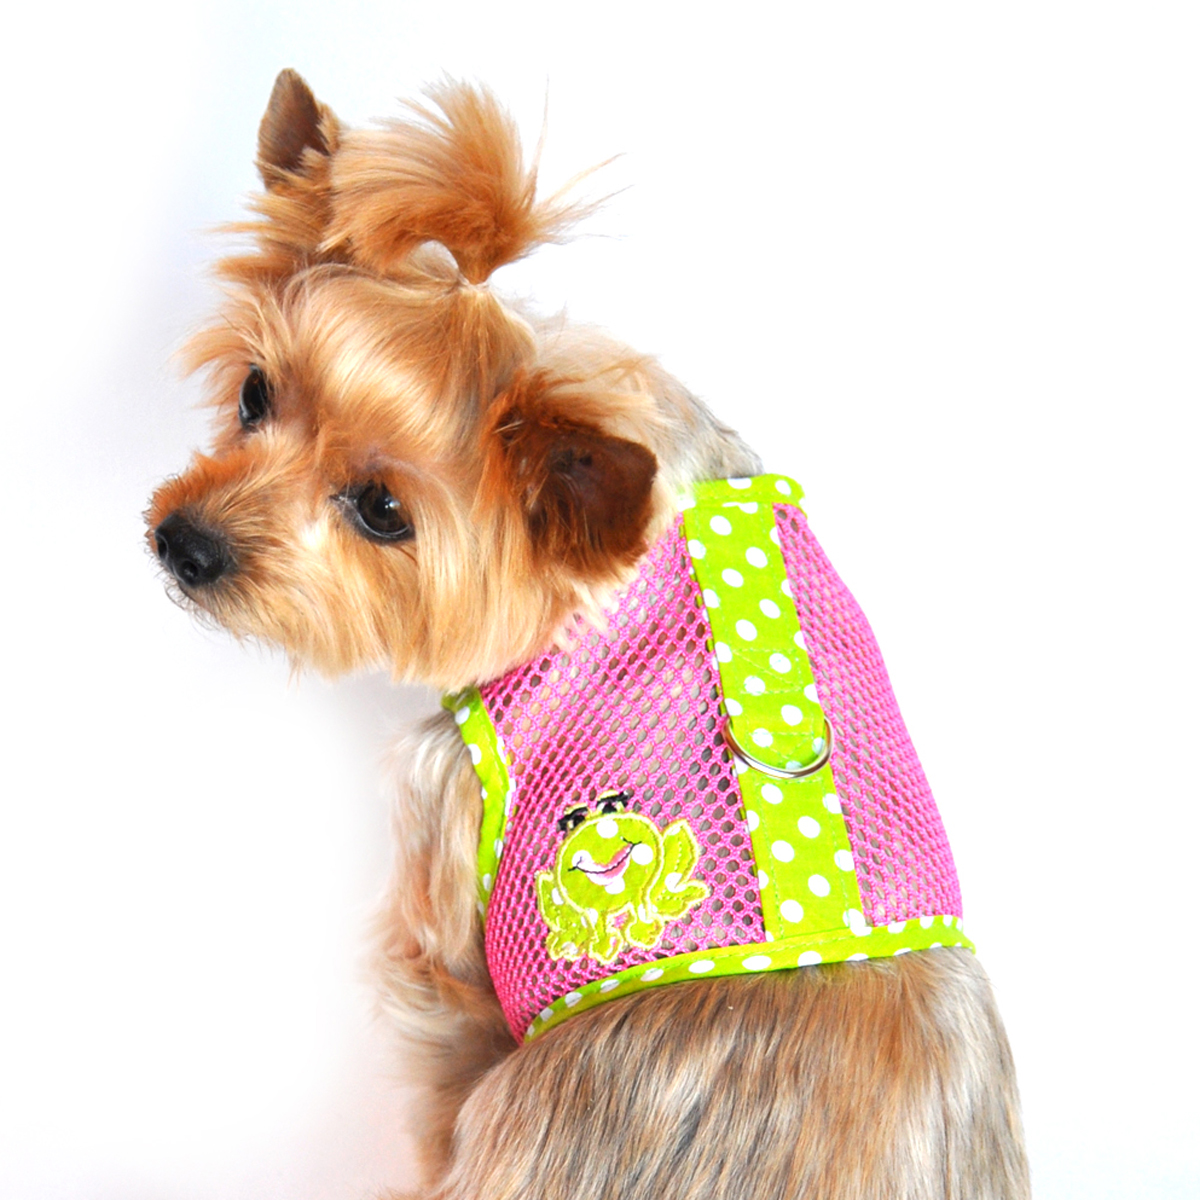 Spotted Frog Mesh Dog Harness by Doggie Design - Green and Pink